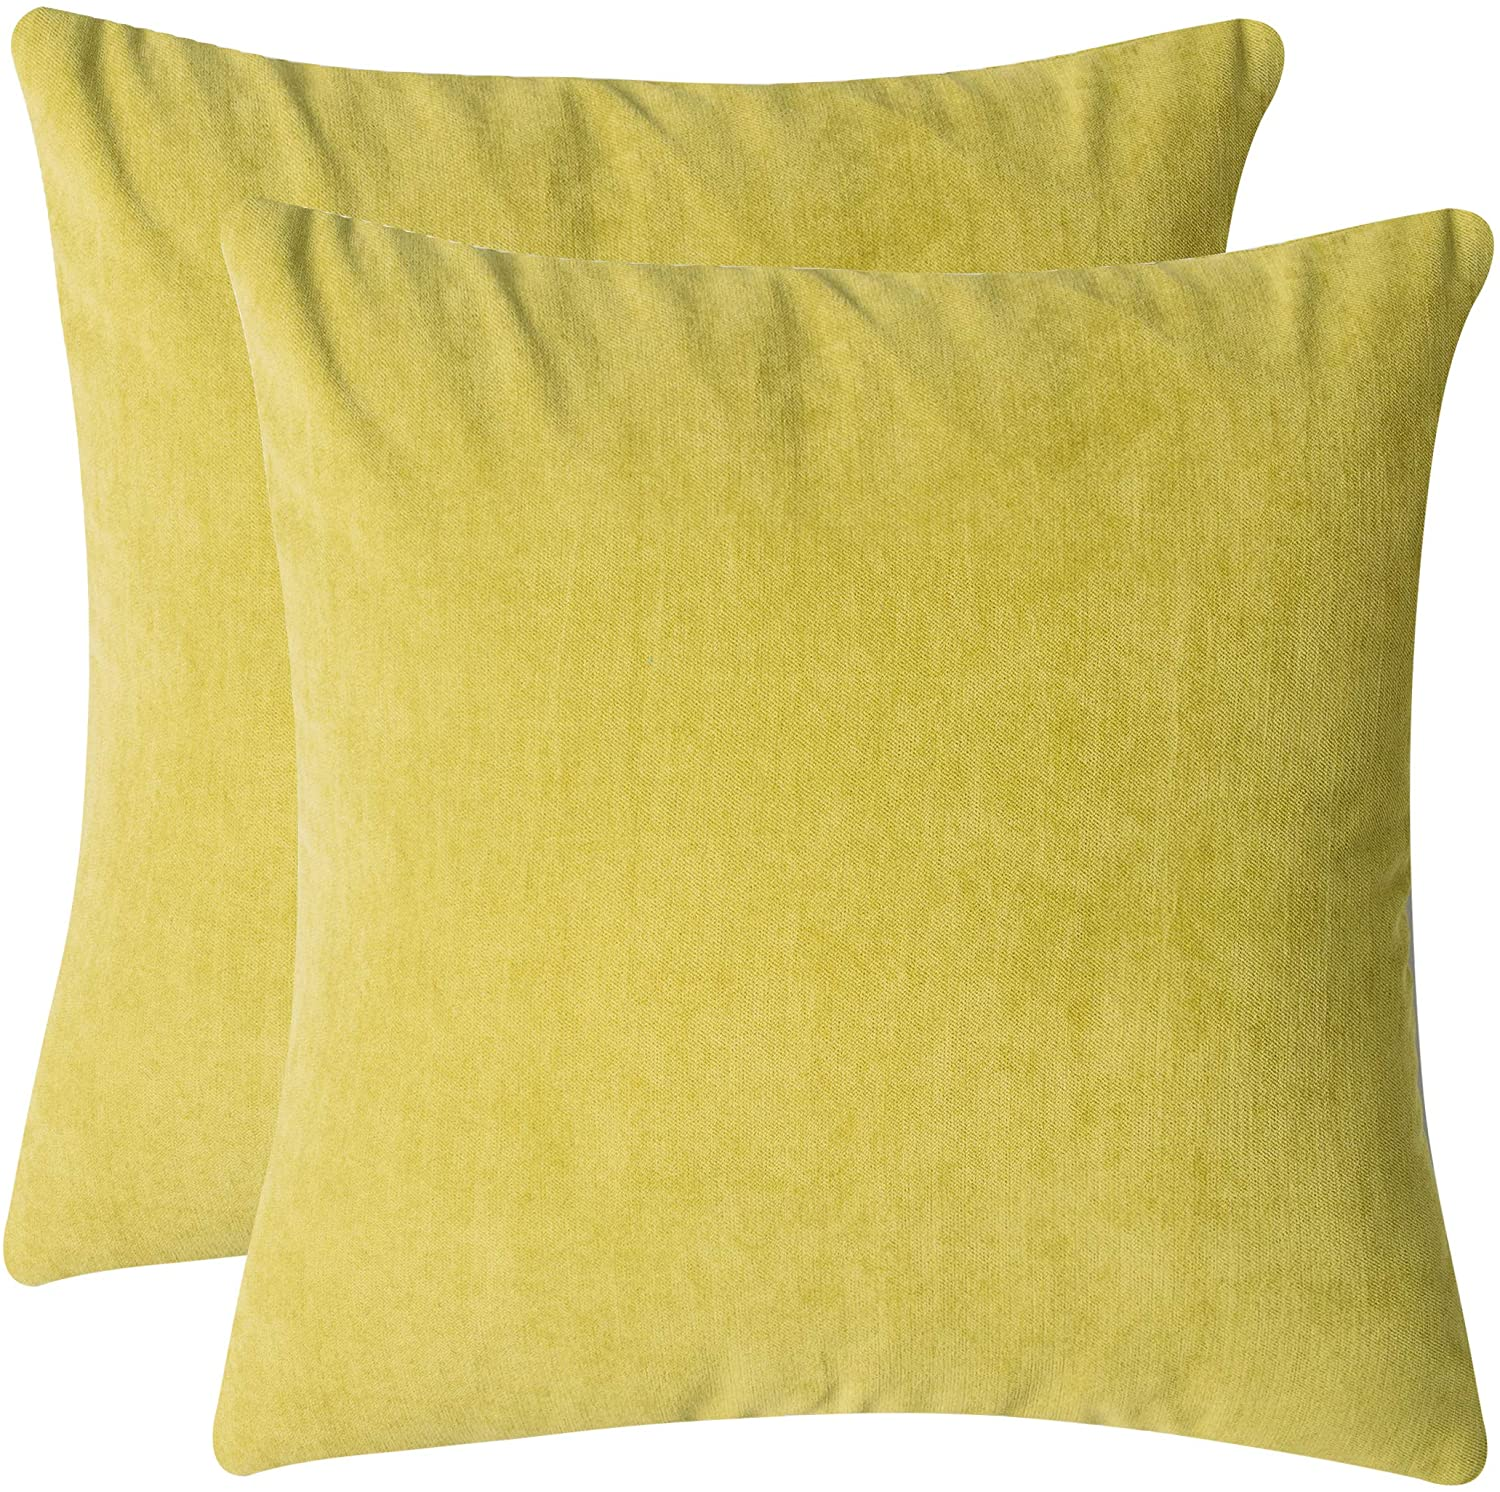 Glory Family Top Finel Decorative Throw Pillow Cases Supersoft Chenille Solid Cushion Covers 18x18 for Sofa Bed,Pack of 2 (Green)